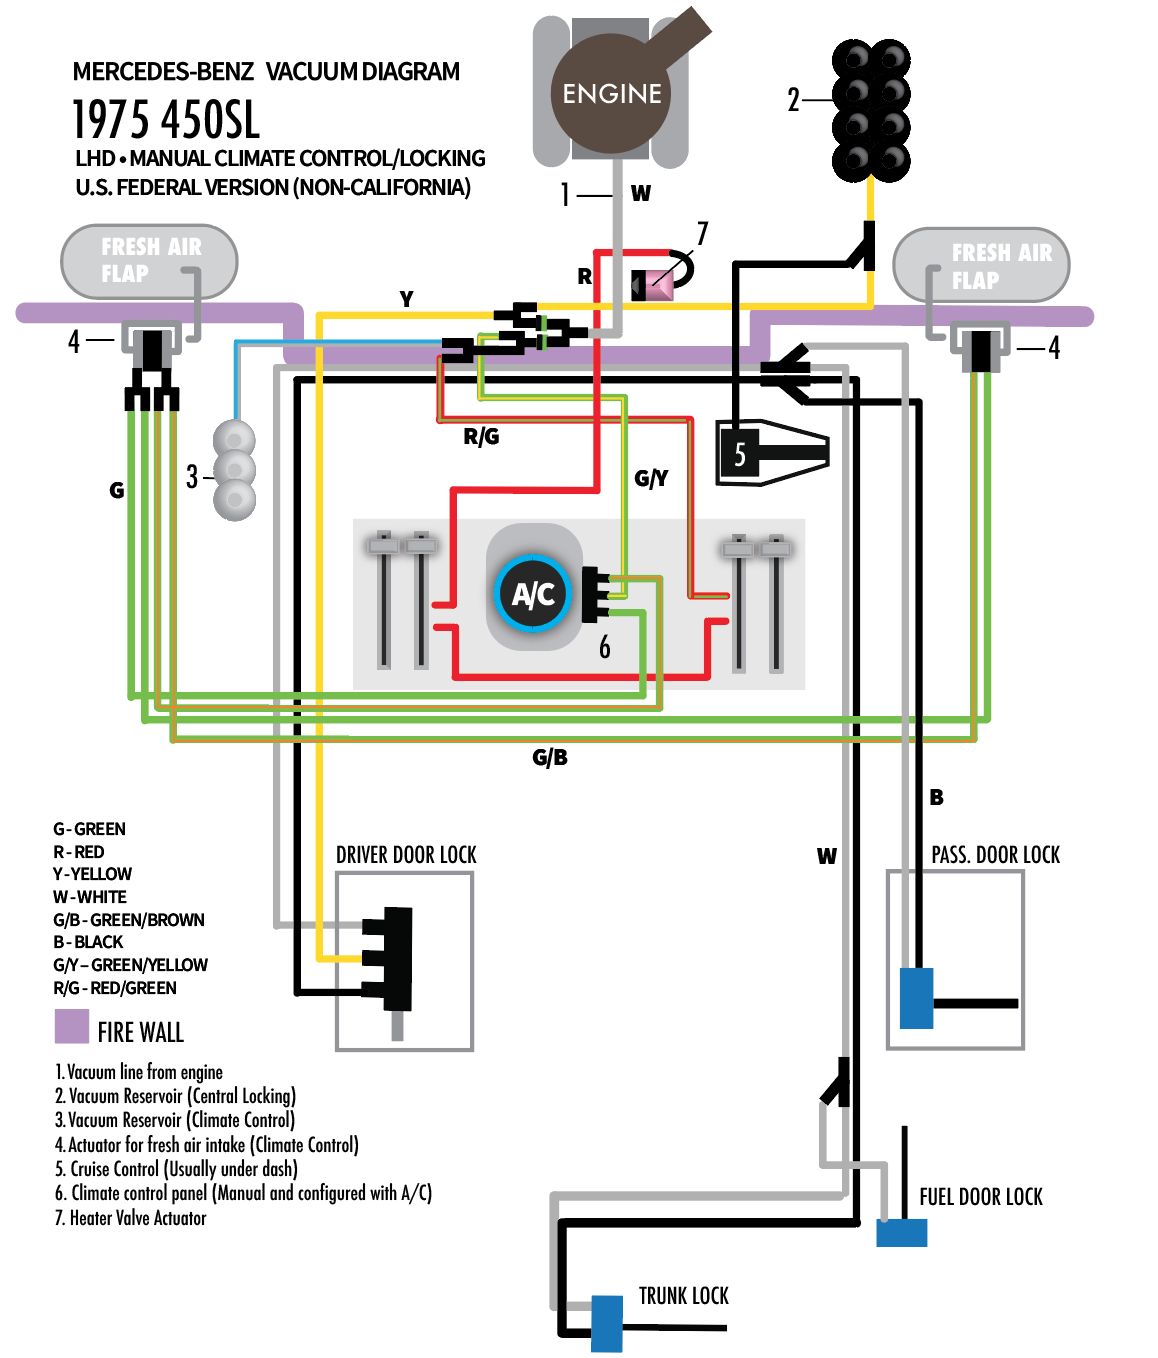 mercedes benz fuel pressure diagram wiring diagram compilation 1985 mercedes benz fuel system diagram wiring diagram [ 1158 x 1358 Pixel ]